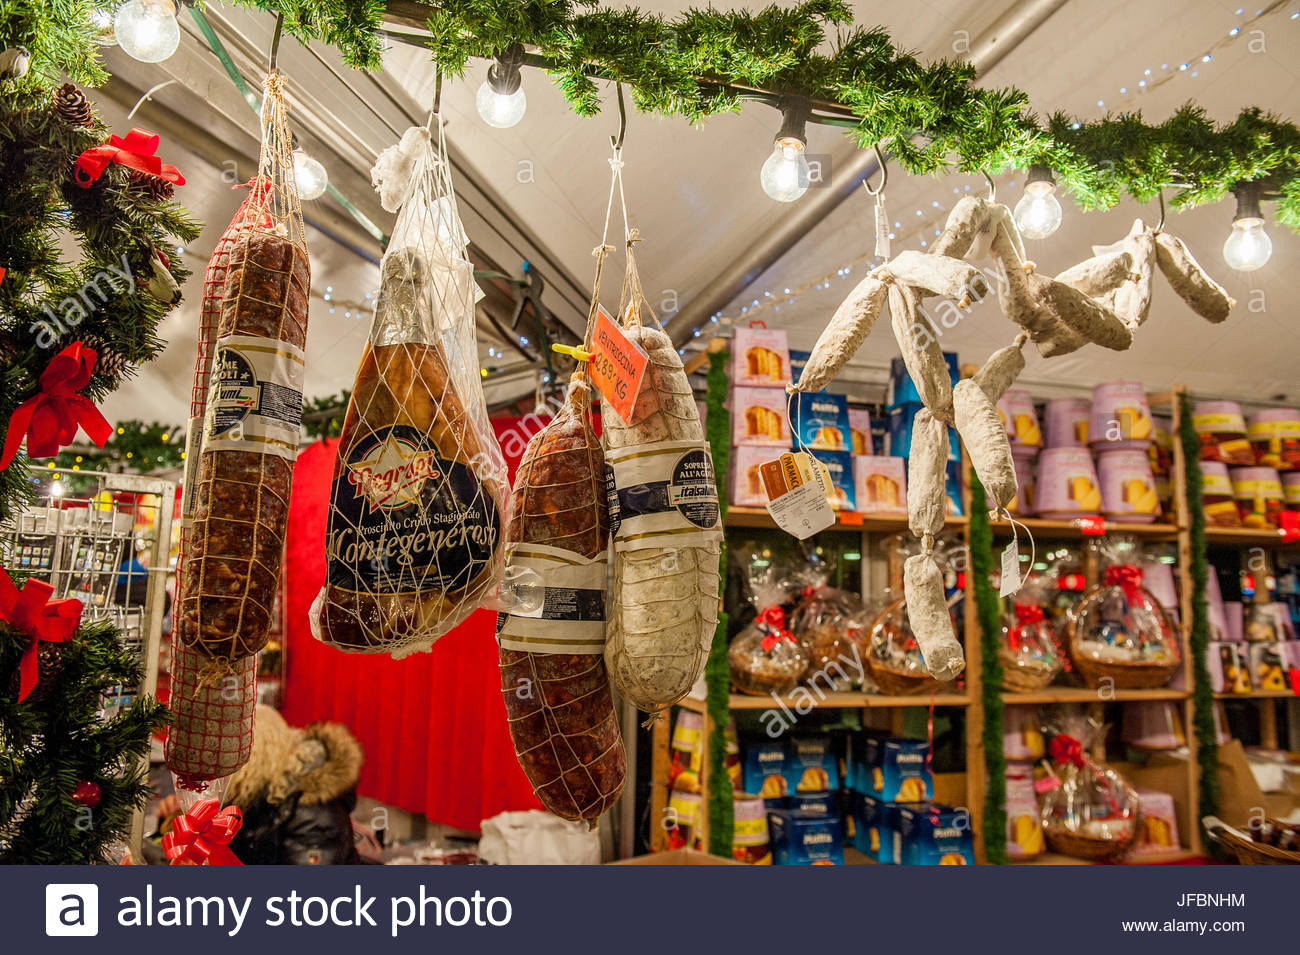 Smoked sausages and cured meats at a Christmas market. - Stock Image